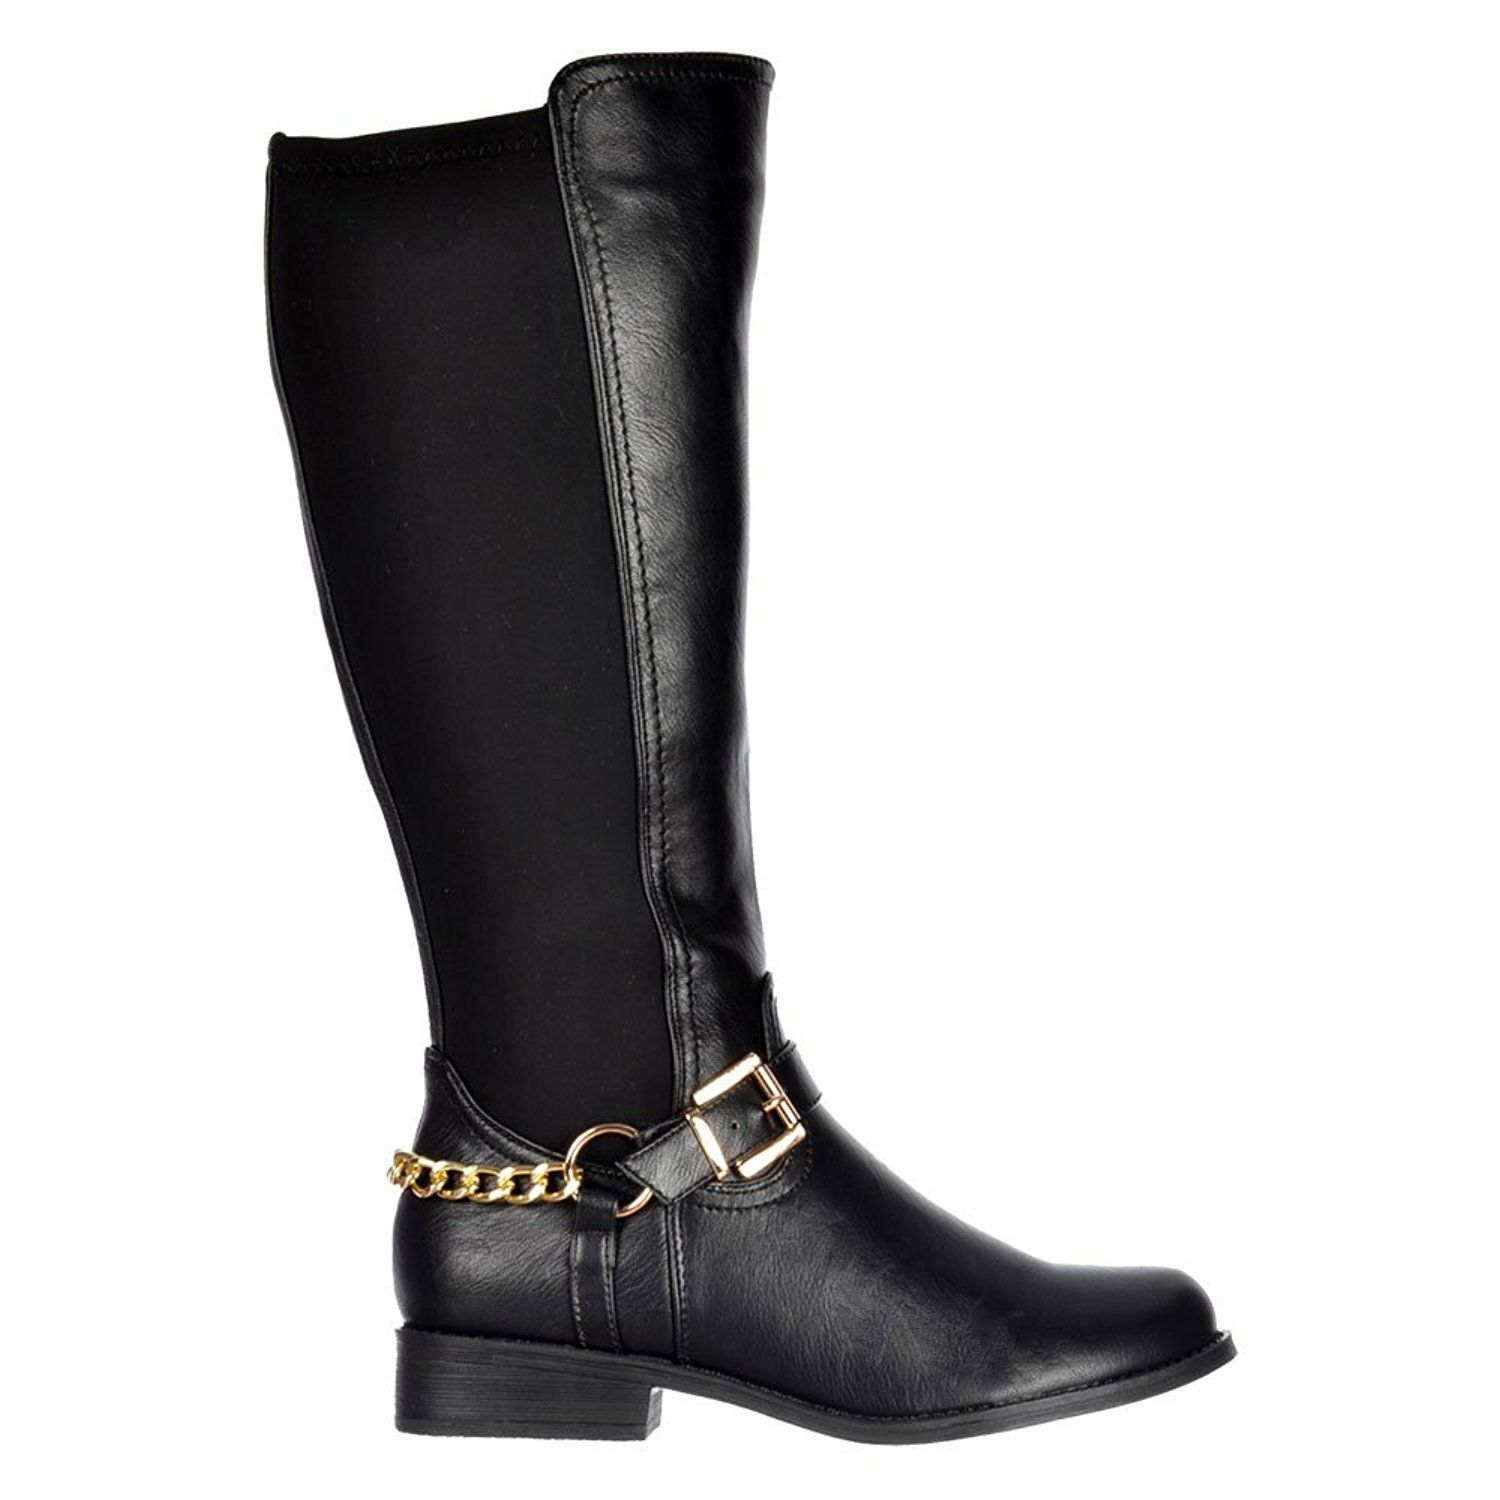 b888973eeec0 Onlineshoe Women s Extra Wide Calf Stretch Knee High Flat Gold Buckle  Riding Boot -- Click image for more details.